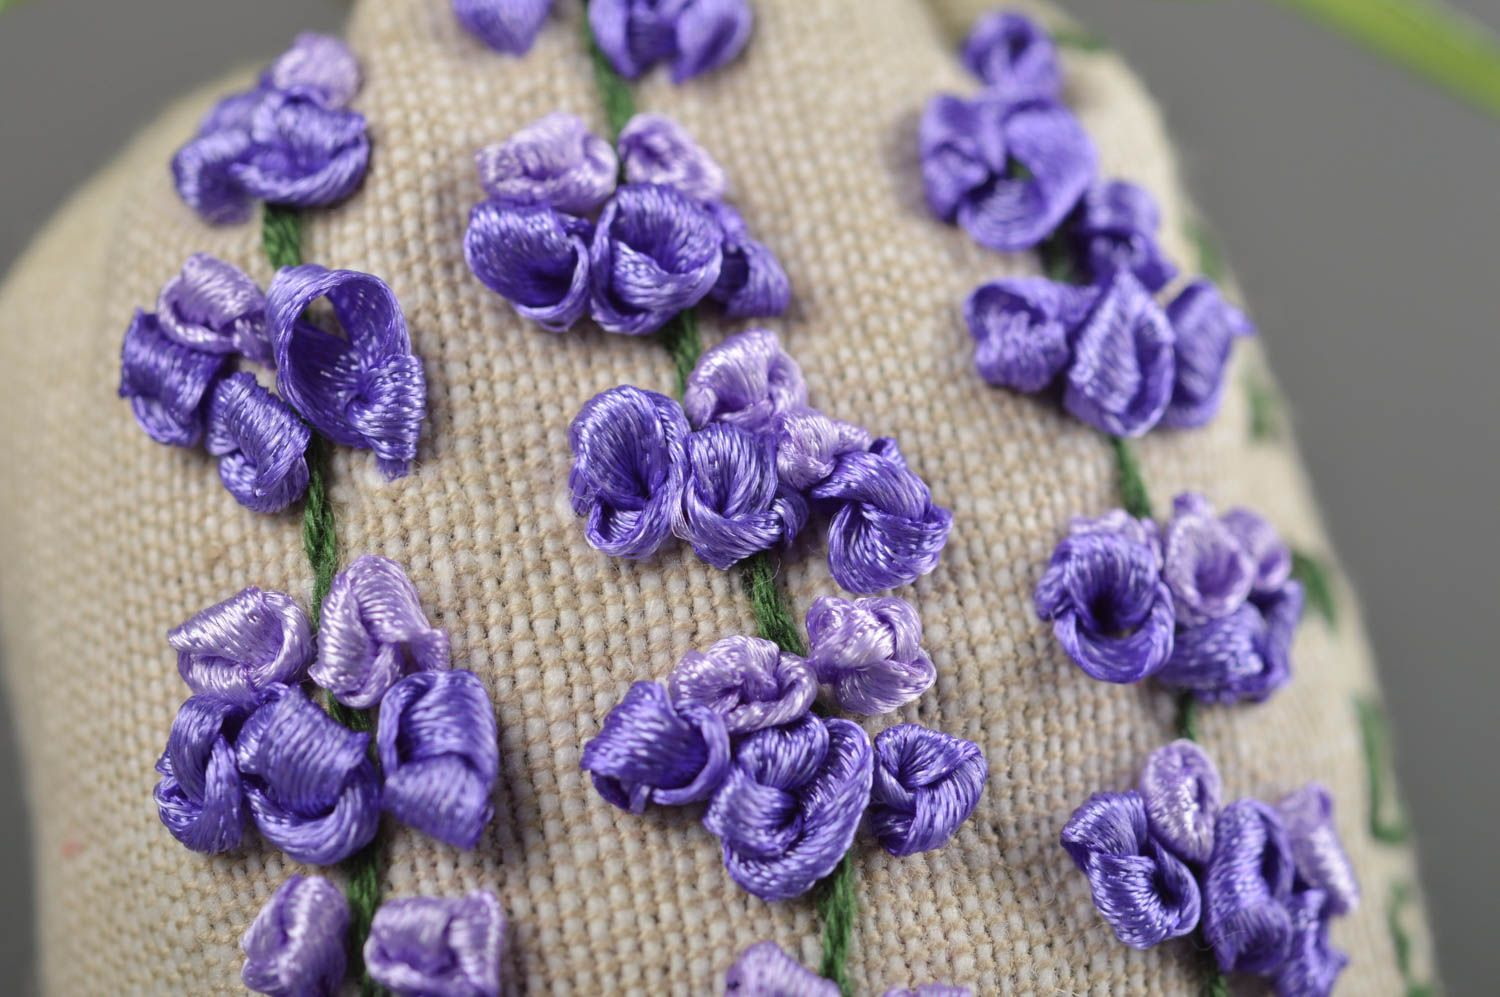 Handmade bags for aromatic sachets cute embroidered bag decorative use only photo 3